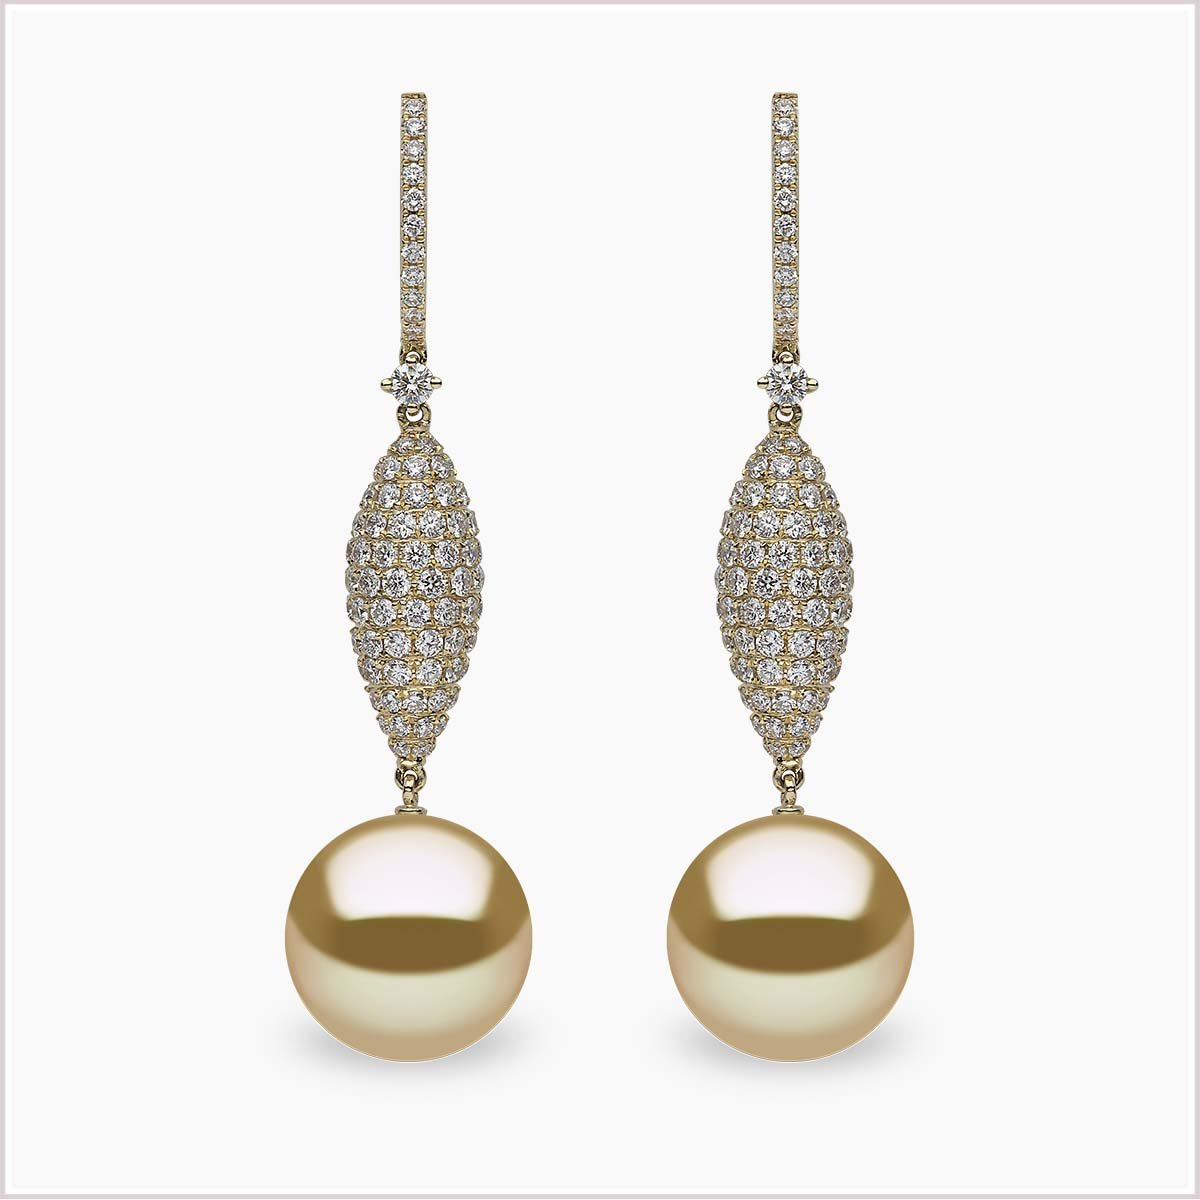 Yoko London Aurelia Diamond and Golden South Sea Pearl Earrings